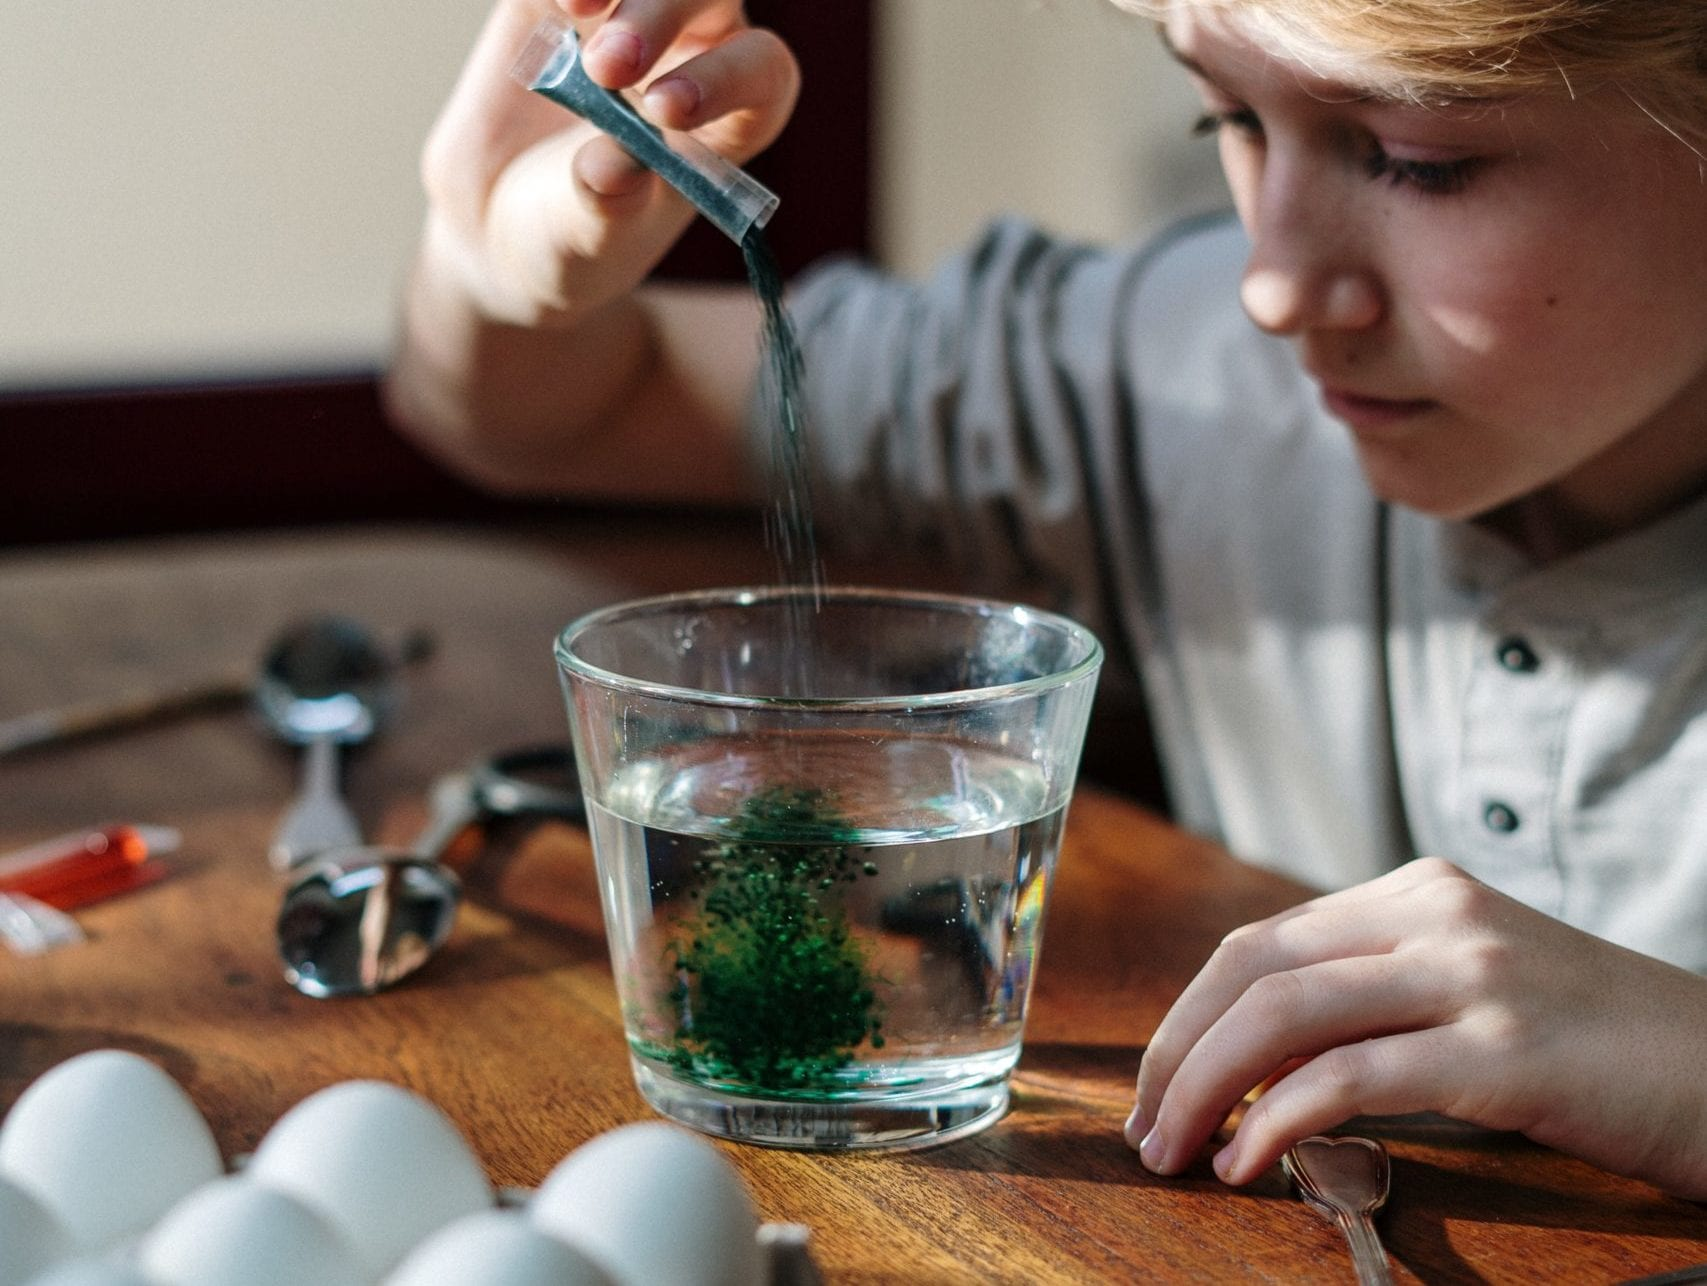 Hands-on Fun: Simple At-Home Experiments for Young Scientists!